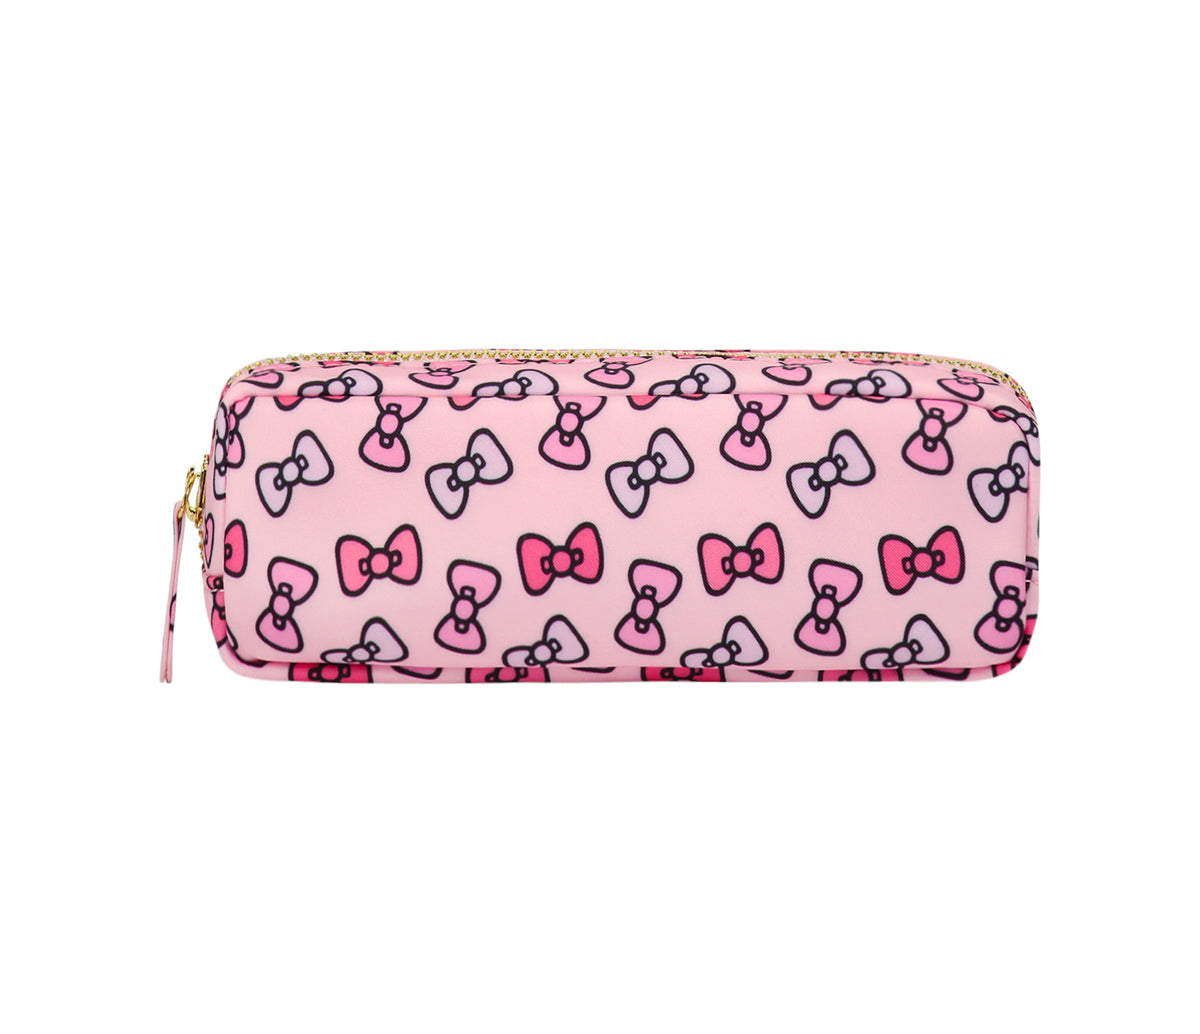 Stoney Clover Lane x Hello Kitty Bows Pencil Case